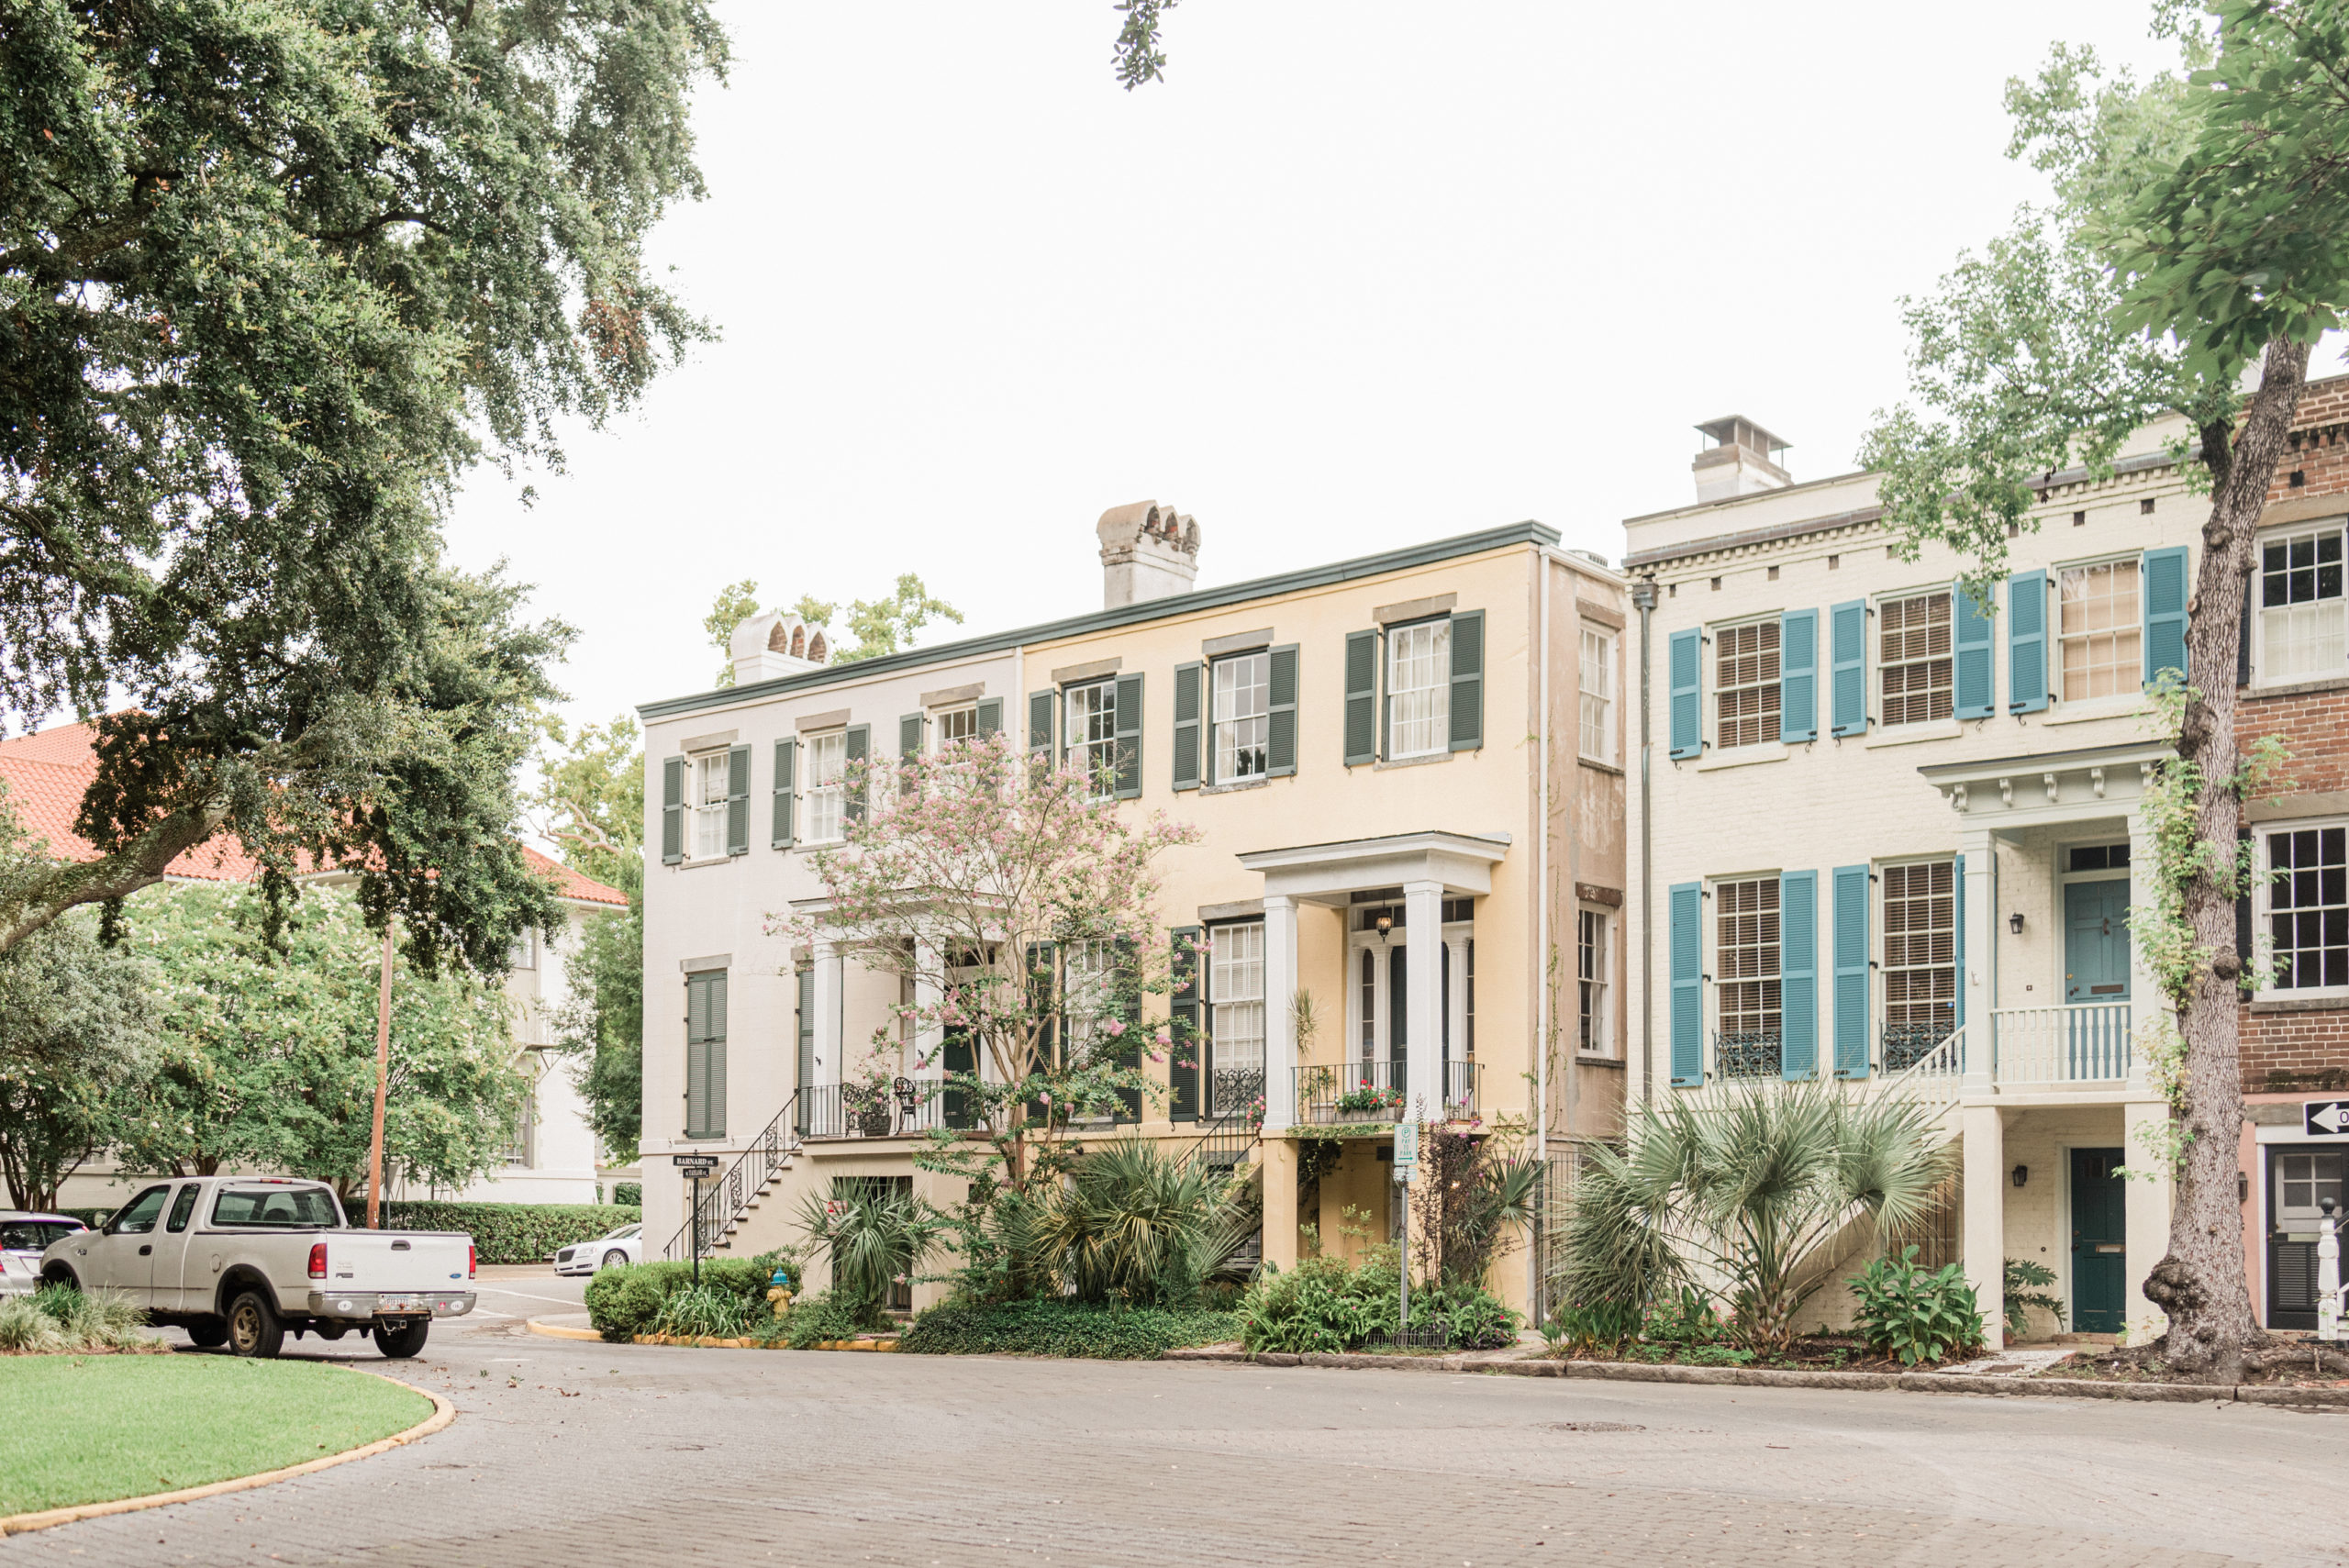 how to spend three days in savannah georgia itinerary historic district flytographer